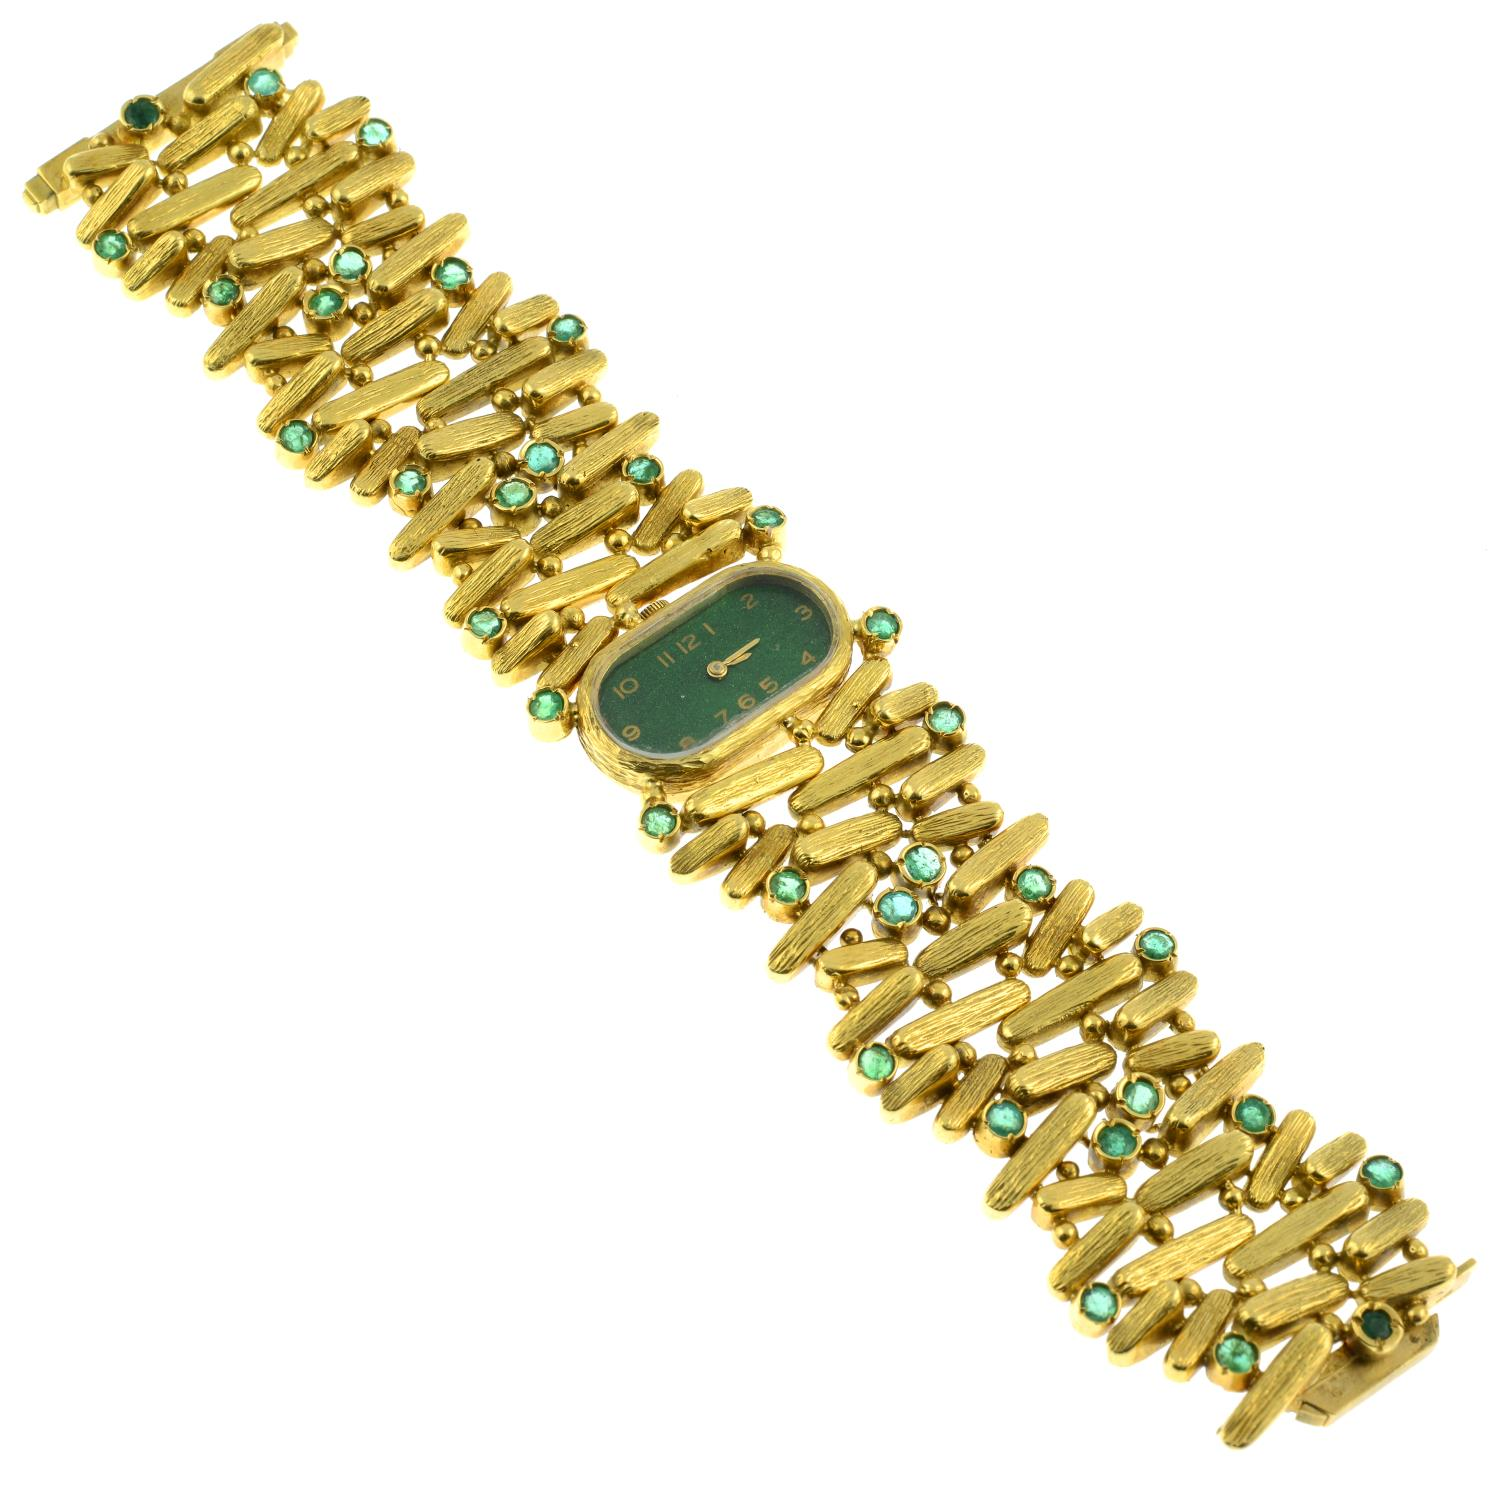 A 1970s 18ct gold emerald cocktail watch, with painted green dial.Maker's mark PG. - Image 3 of 4